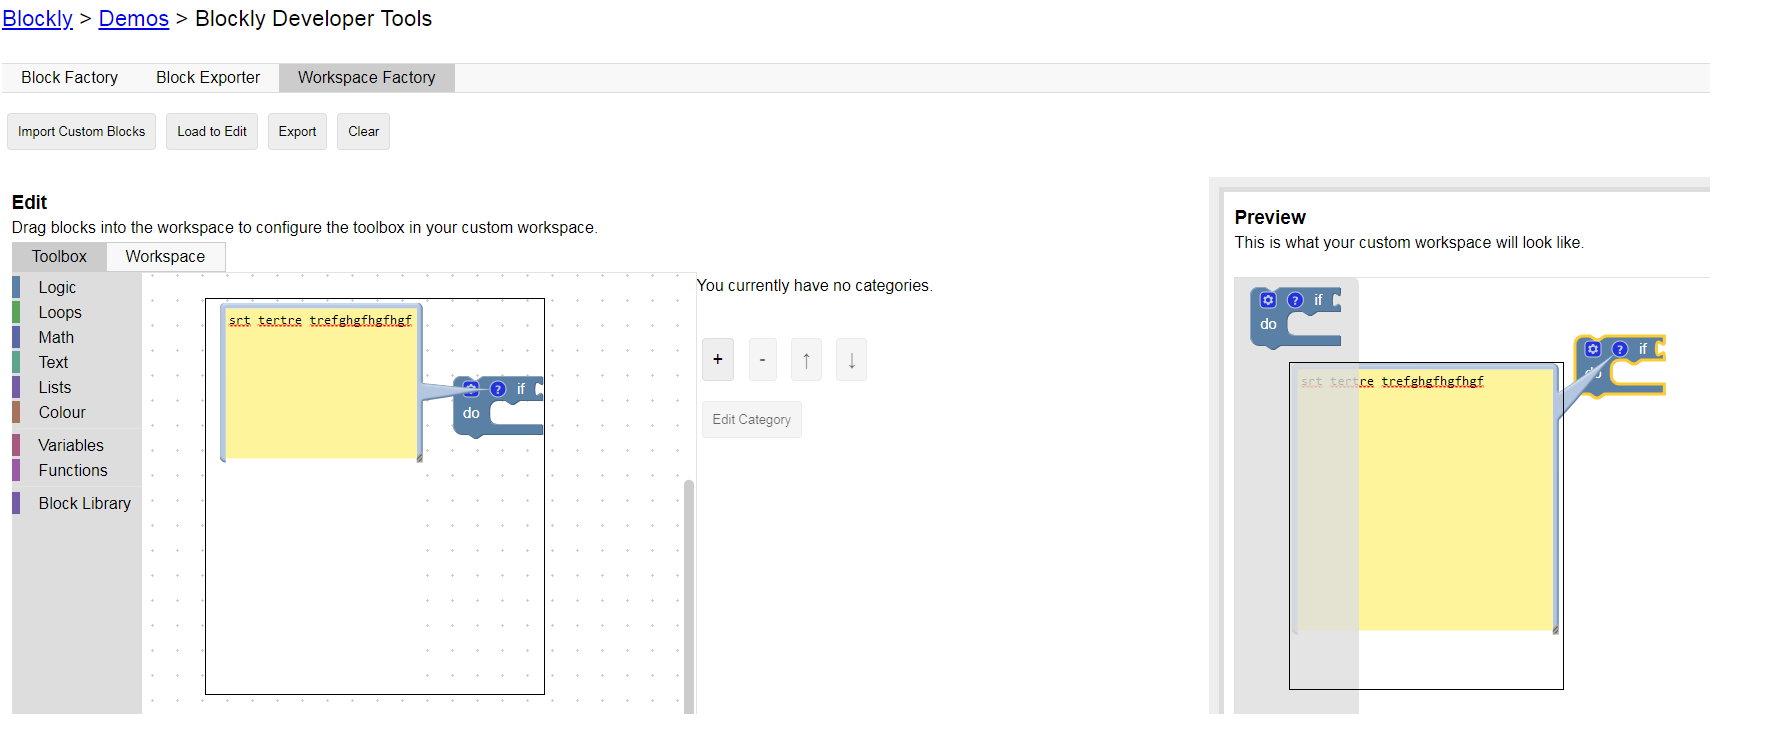 Comment boxes UI Issue · Issue #2015 · google/blockly · GitHub